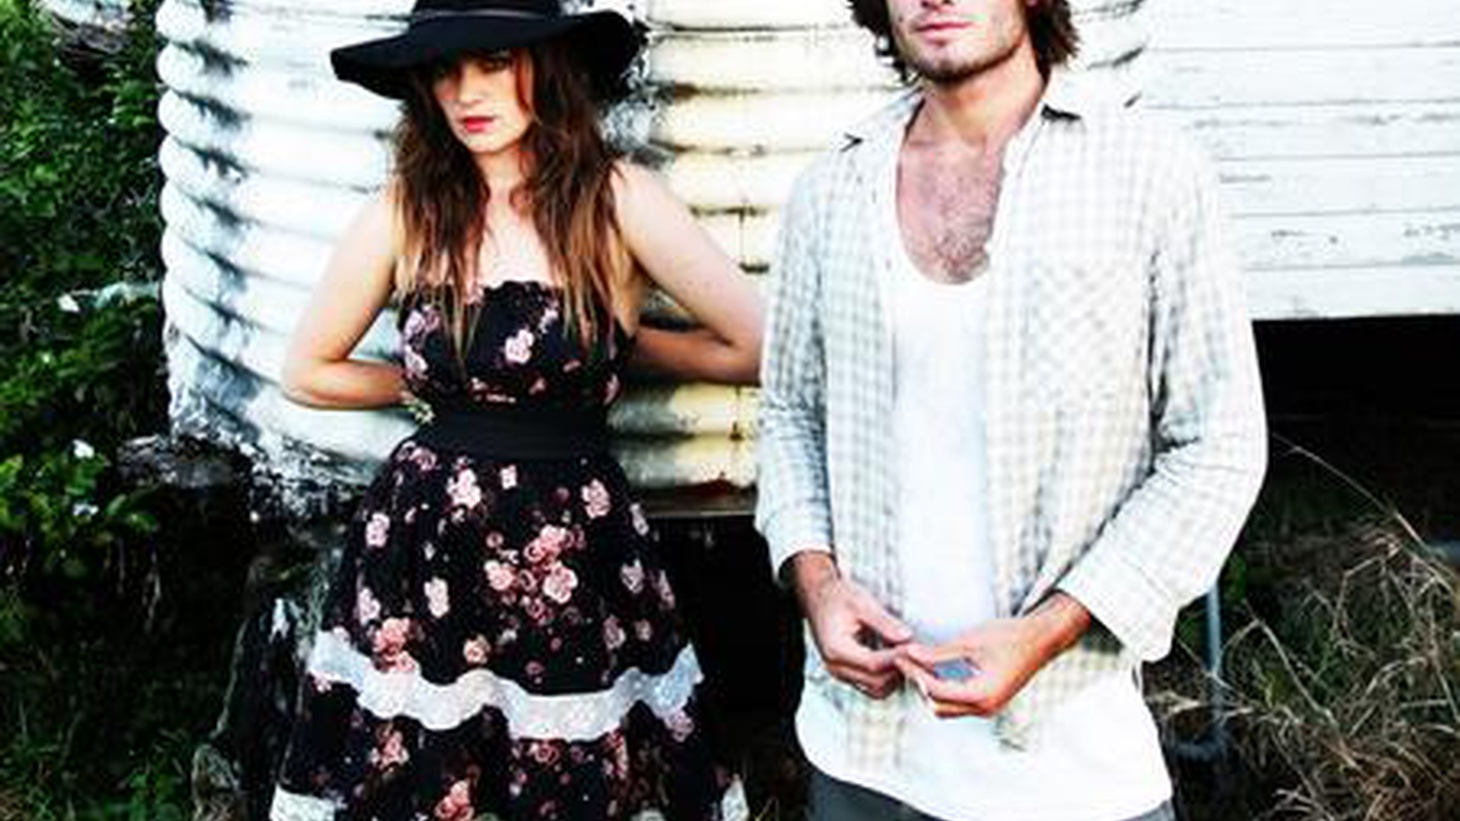 Growing up in the northern beaches of Sydney, brother and sister Angus & Julia Stone were taught the history of pop music from an early age by their father, who played in a cover band. The siblings released an EP of early material, Chocolates & Cigarettes, before moving to London in 2006 where they went on to record their second EP, Heart Full of Wine.  A year later their debut full-length, A Book Like This, was released to critical acclaim.